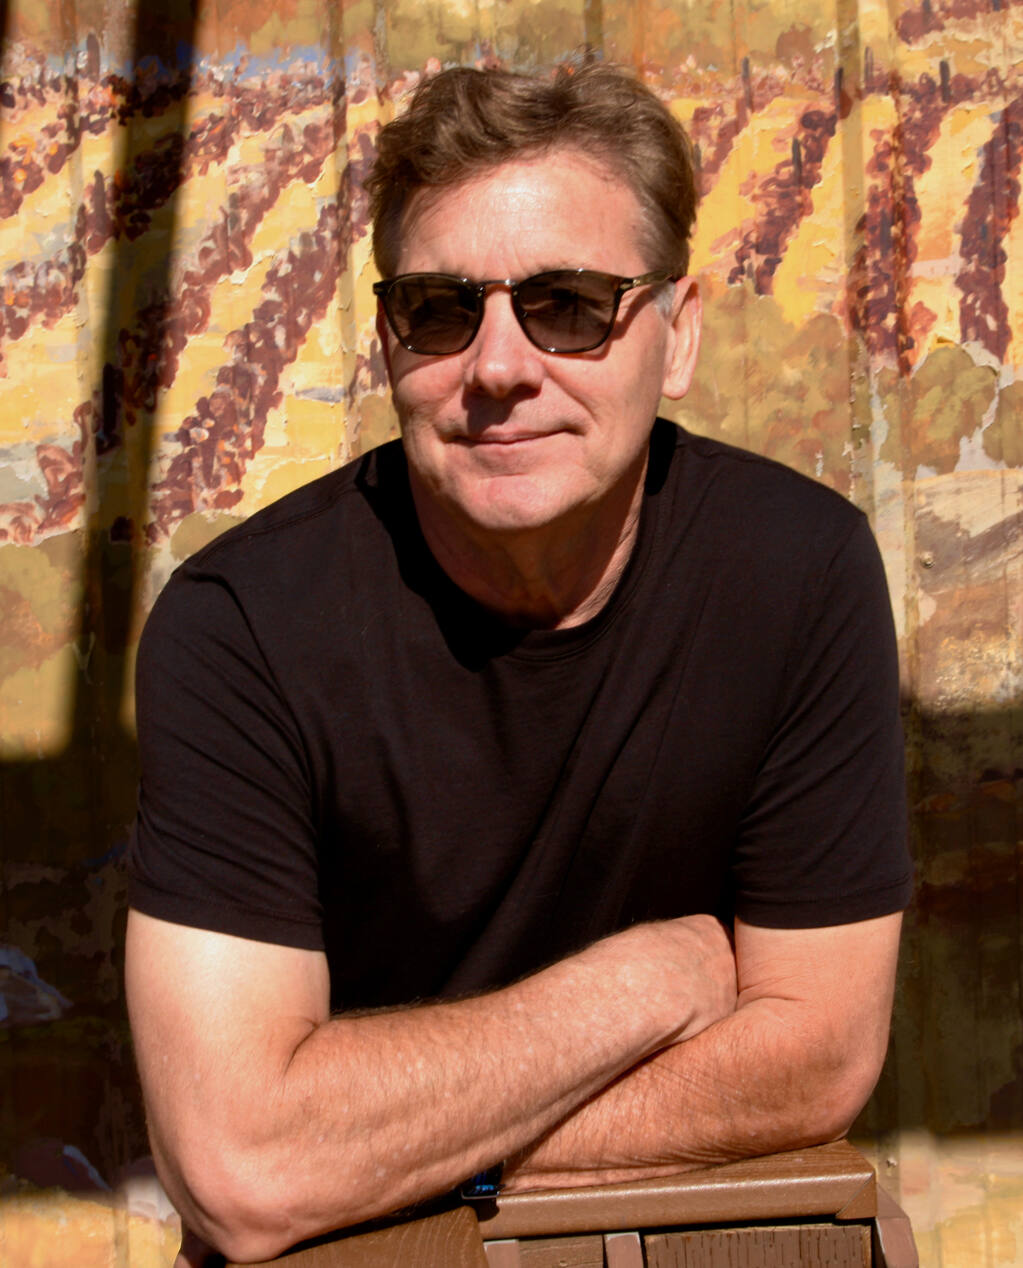 """Rex Pickett, who wrote the original novel """"Sideways,"""" hosted """"A Concert of Songs from 'Sideways: The Musical'"""" Sept. 11-12 at Buena Vista Winery in Sonoma. (Via Regia Productions)"""